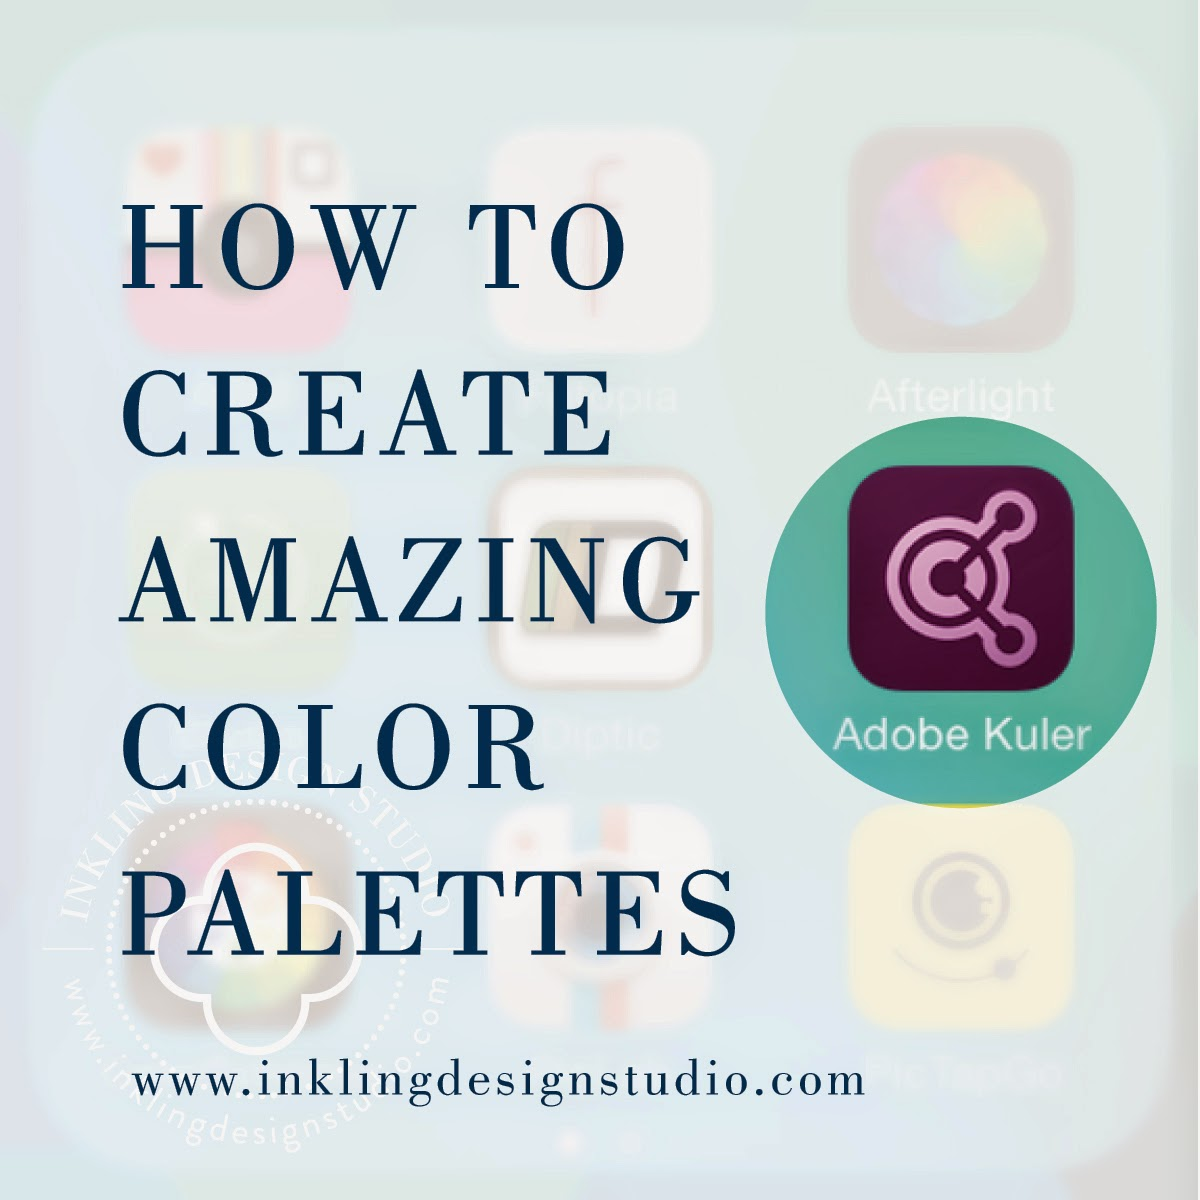 How-to-create-amazing-color-palettes